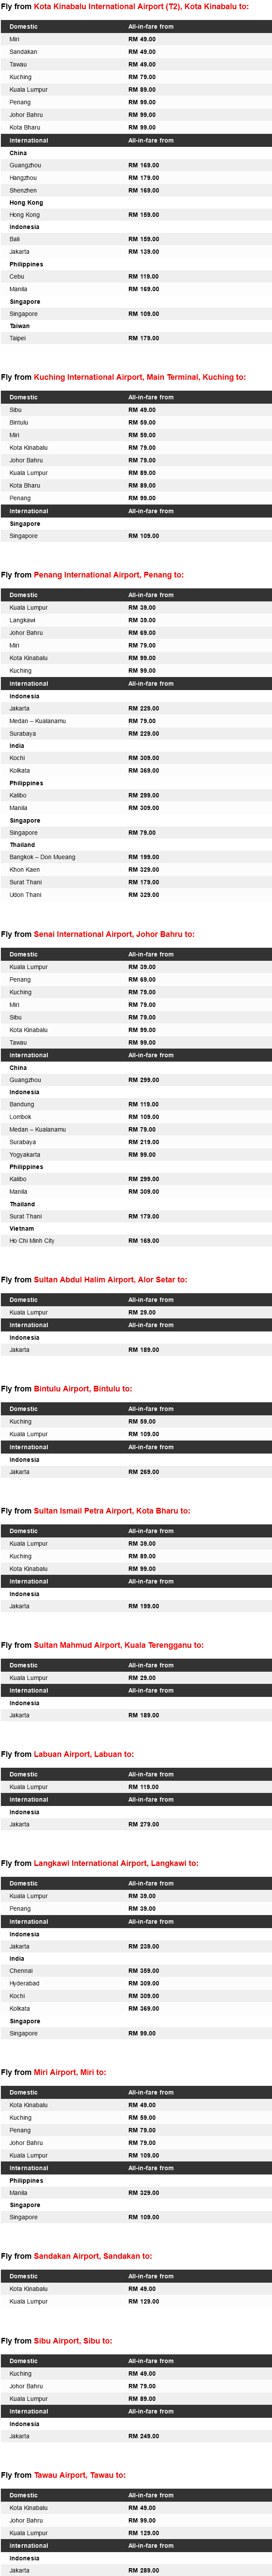 AirAsia Book Flights And Earn Big Points